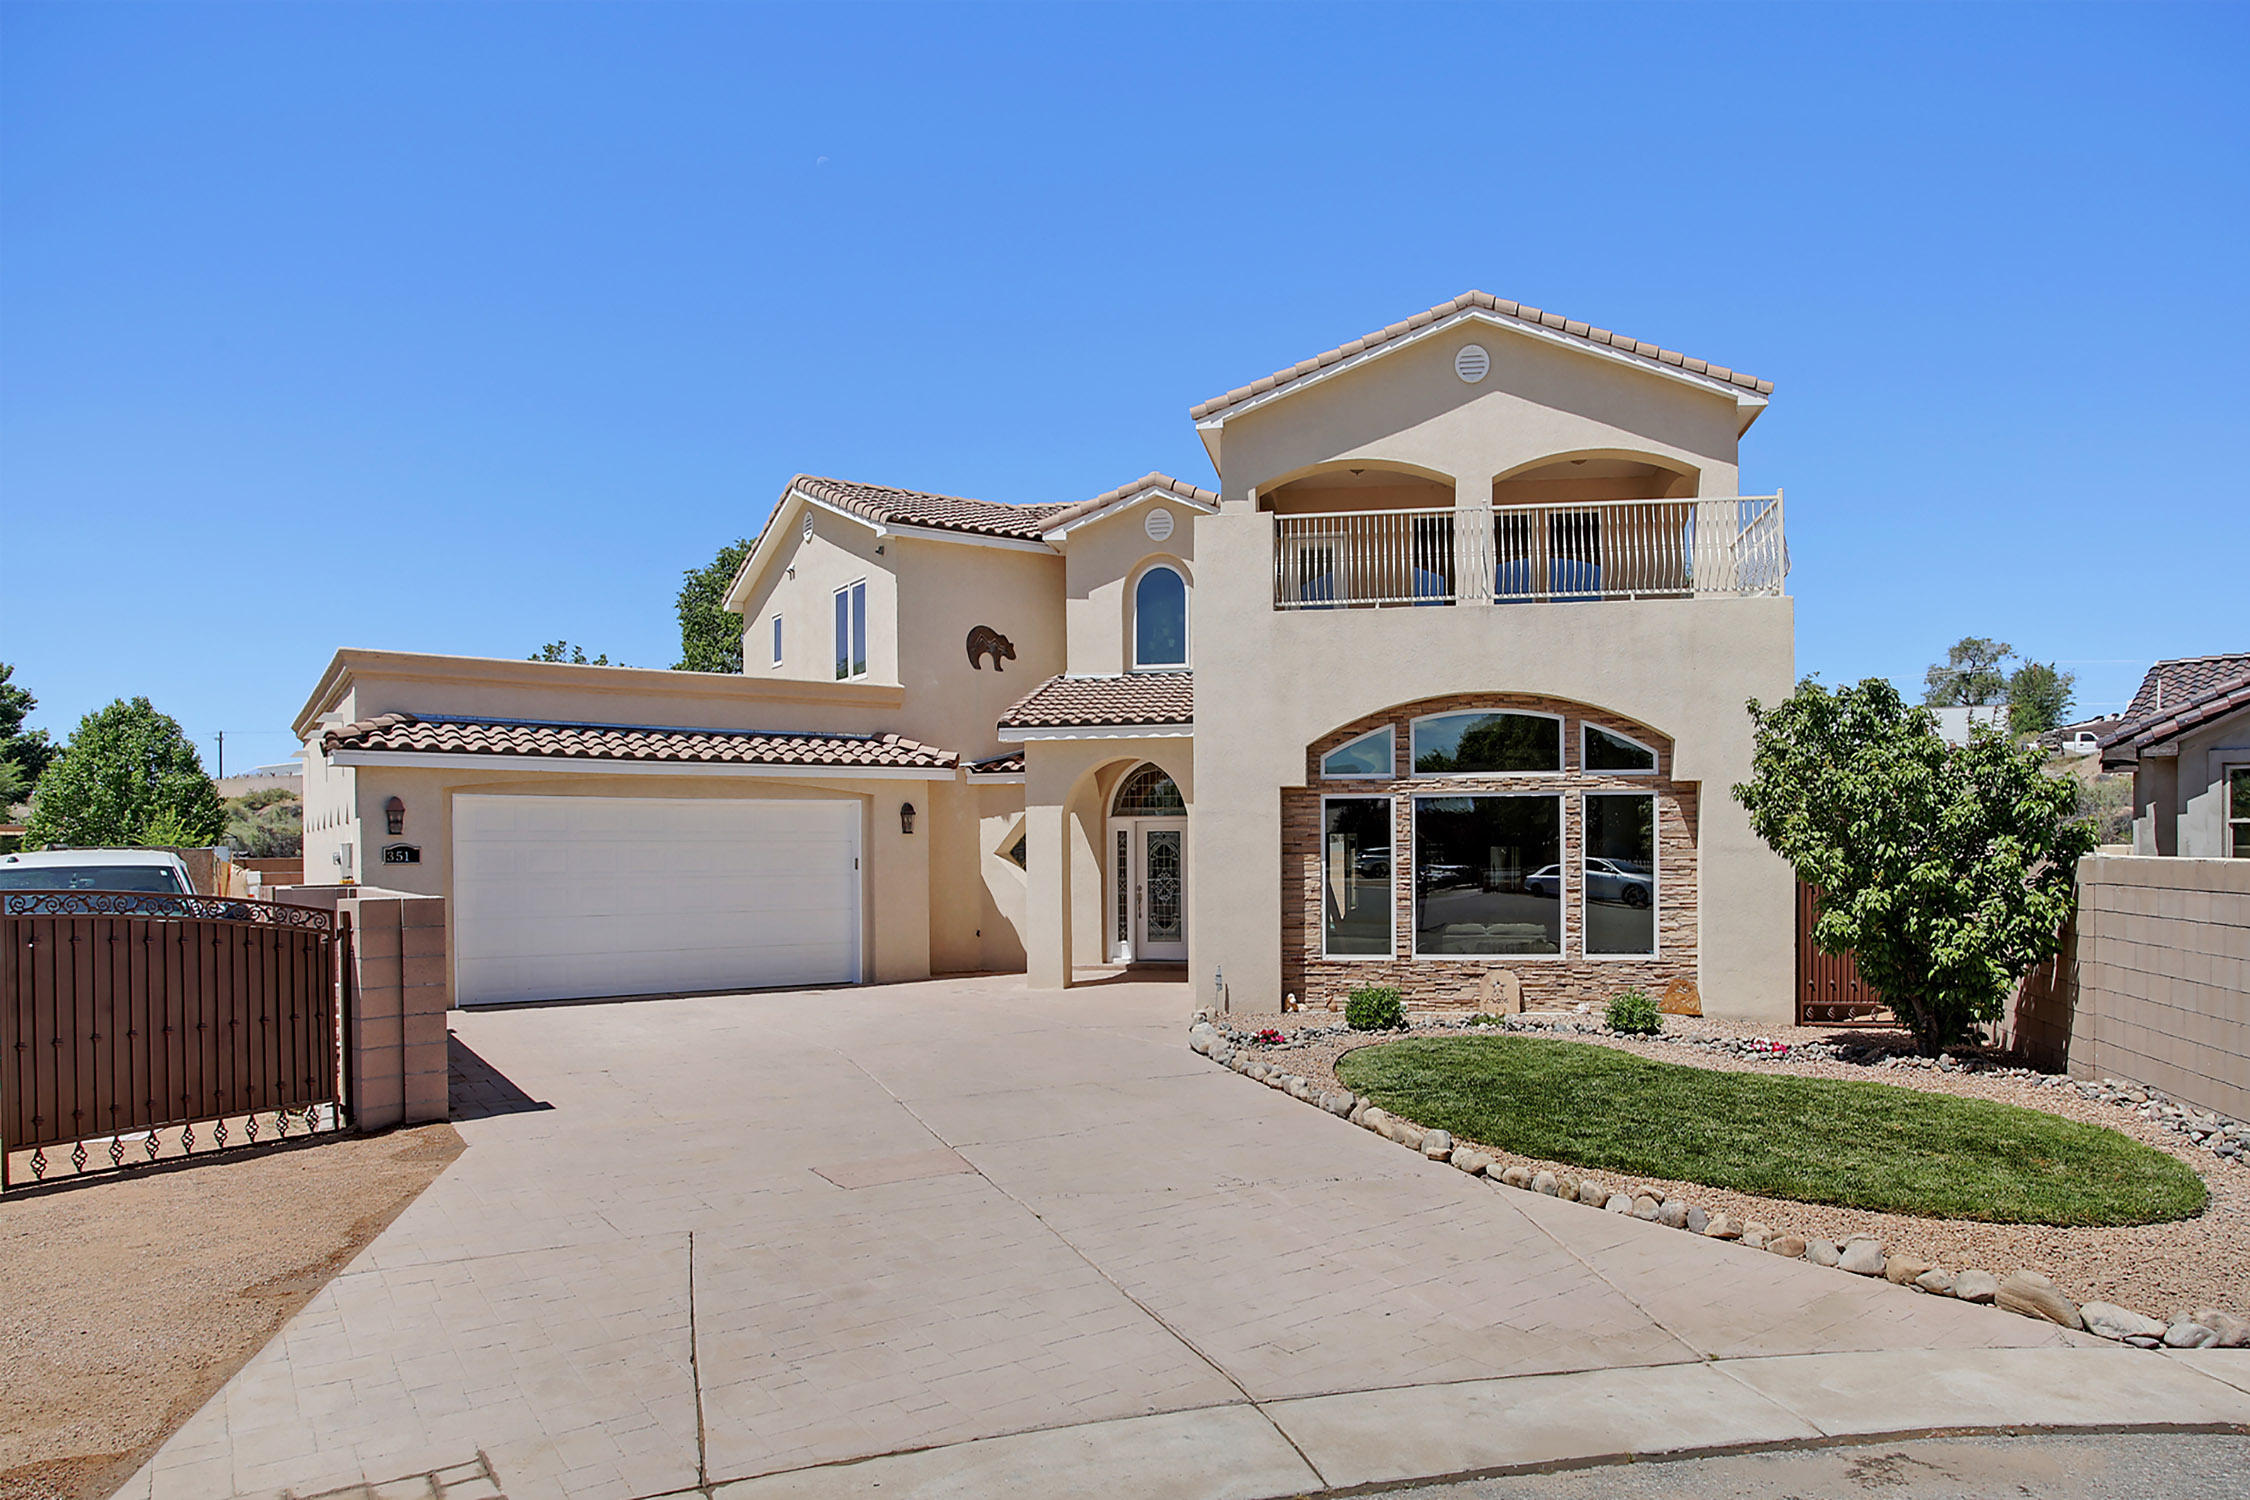 3512 BAREBACK Place SW, Albuquerque, NM 87105 - Albuquerque, NM real estate listing